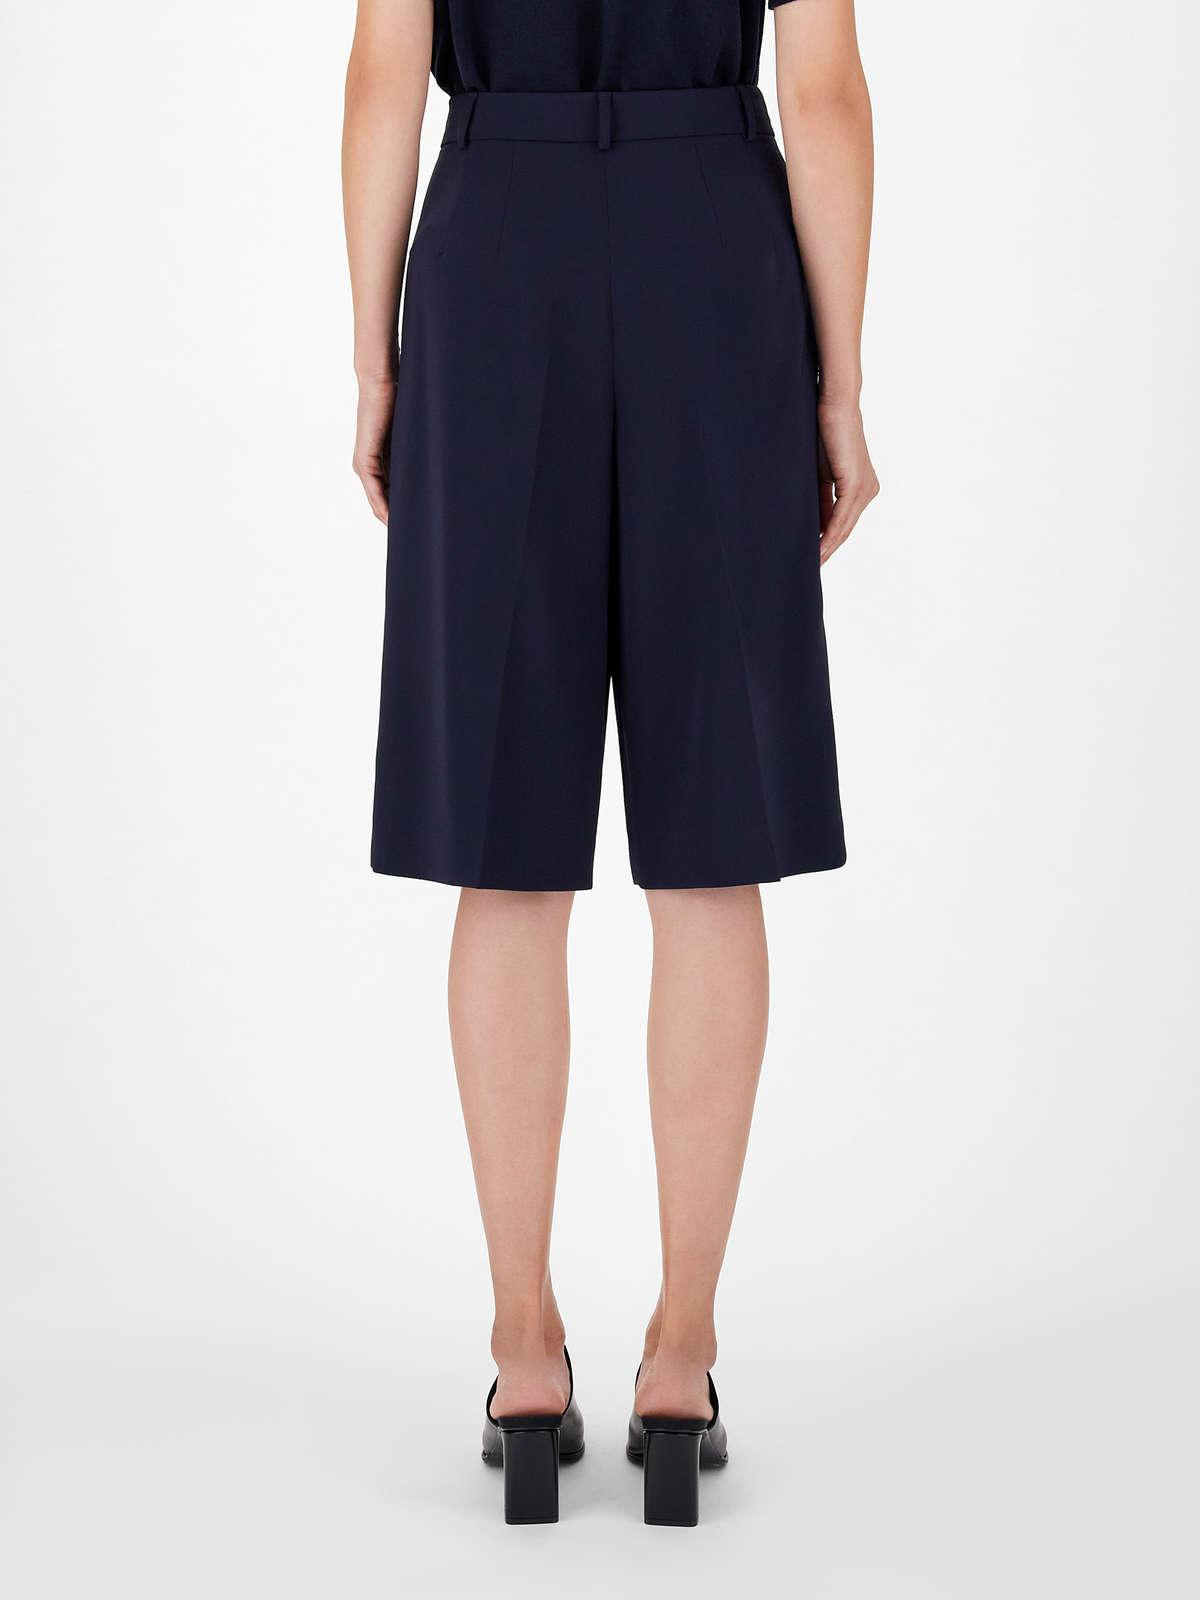 Womens Max Mara Trousers And Jeans | Cady Shorts Navy